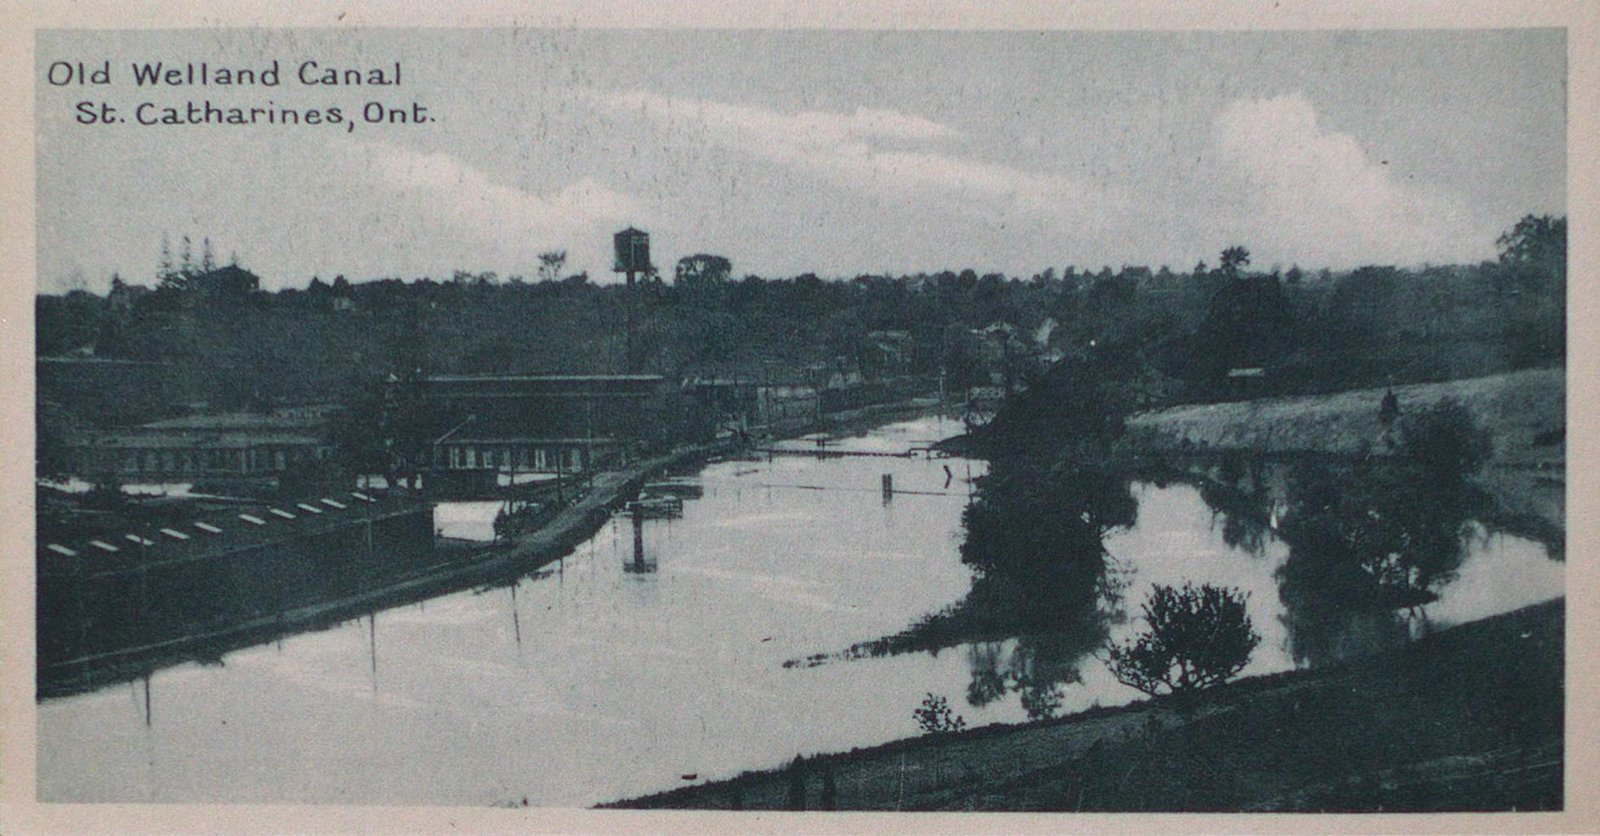 Souvenir of St. Catharines Postcards: The Old Welland Canal